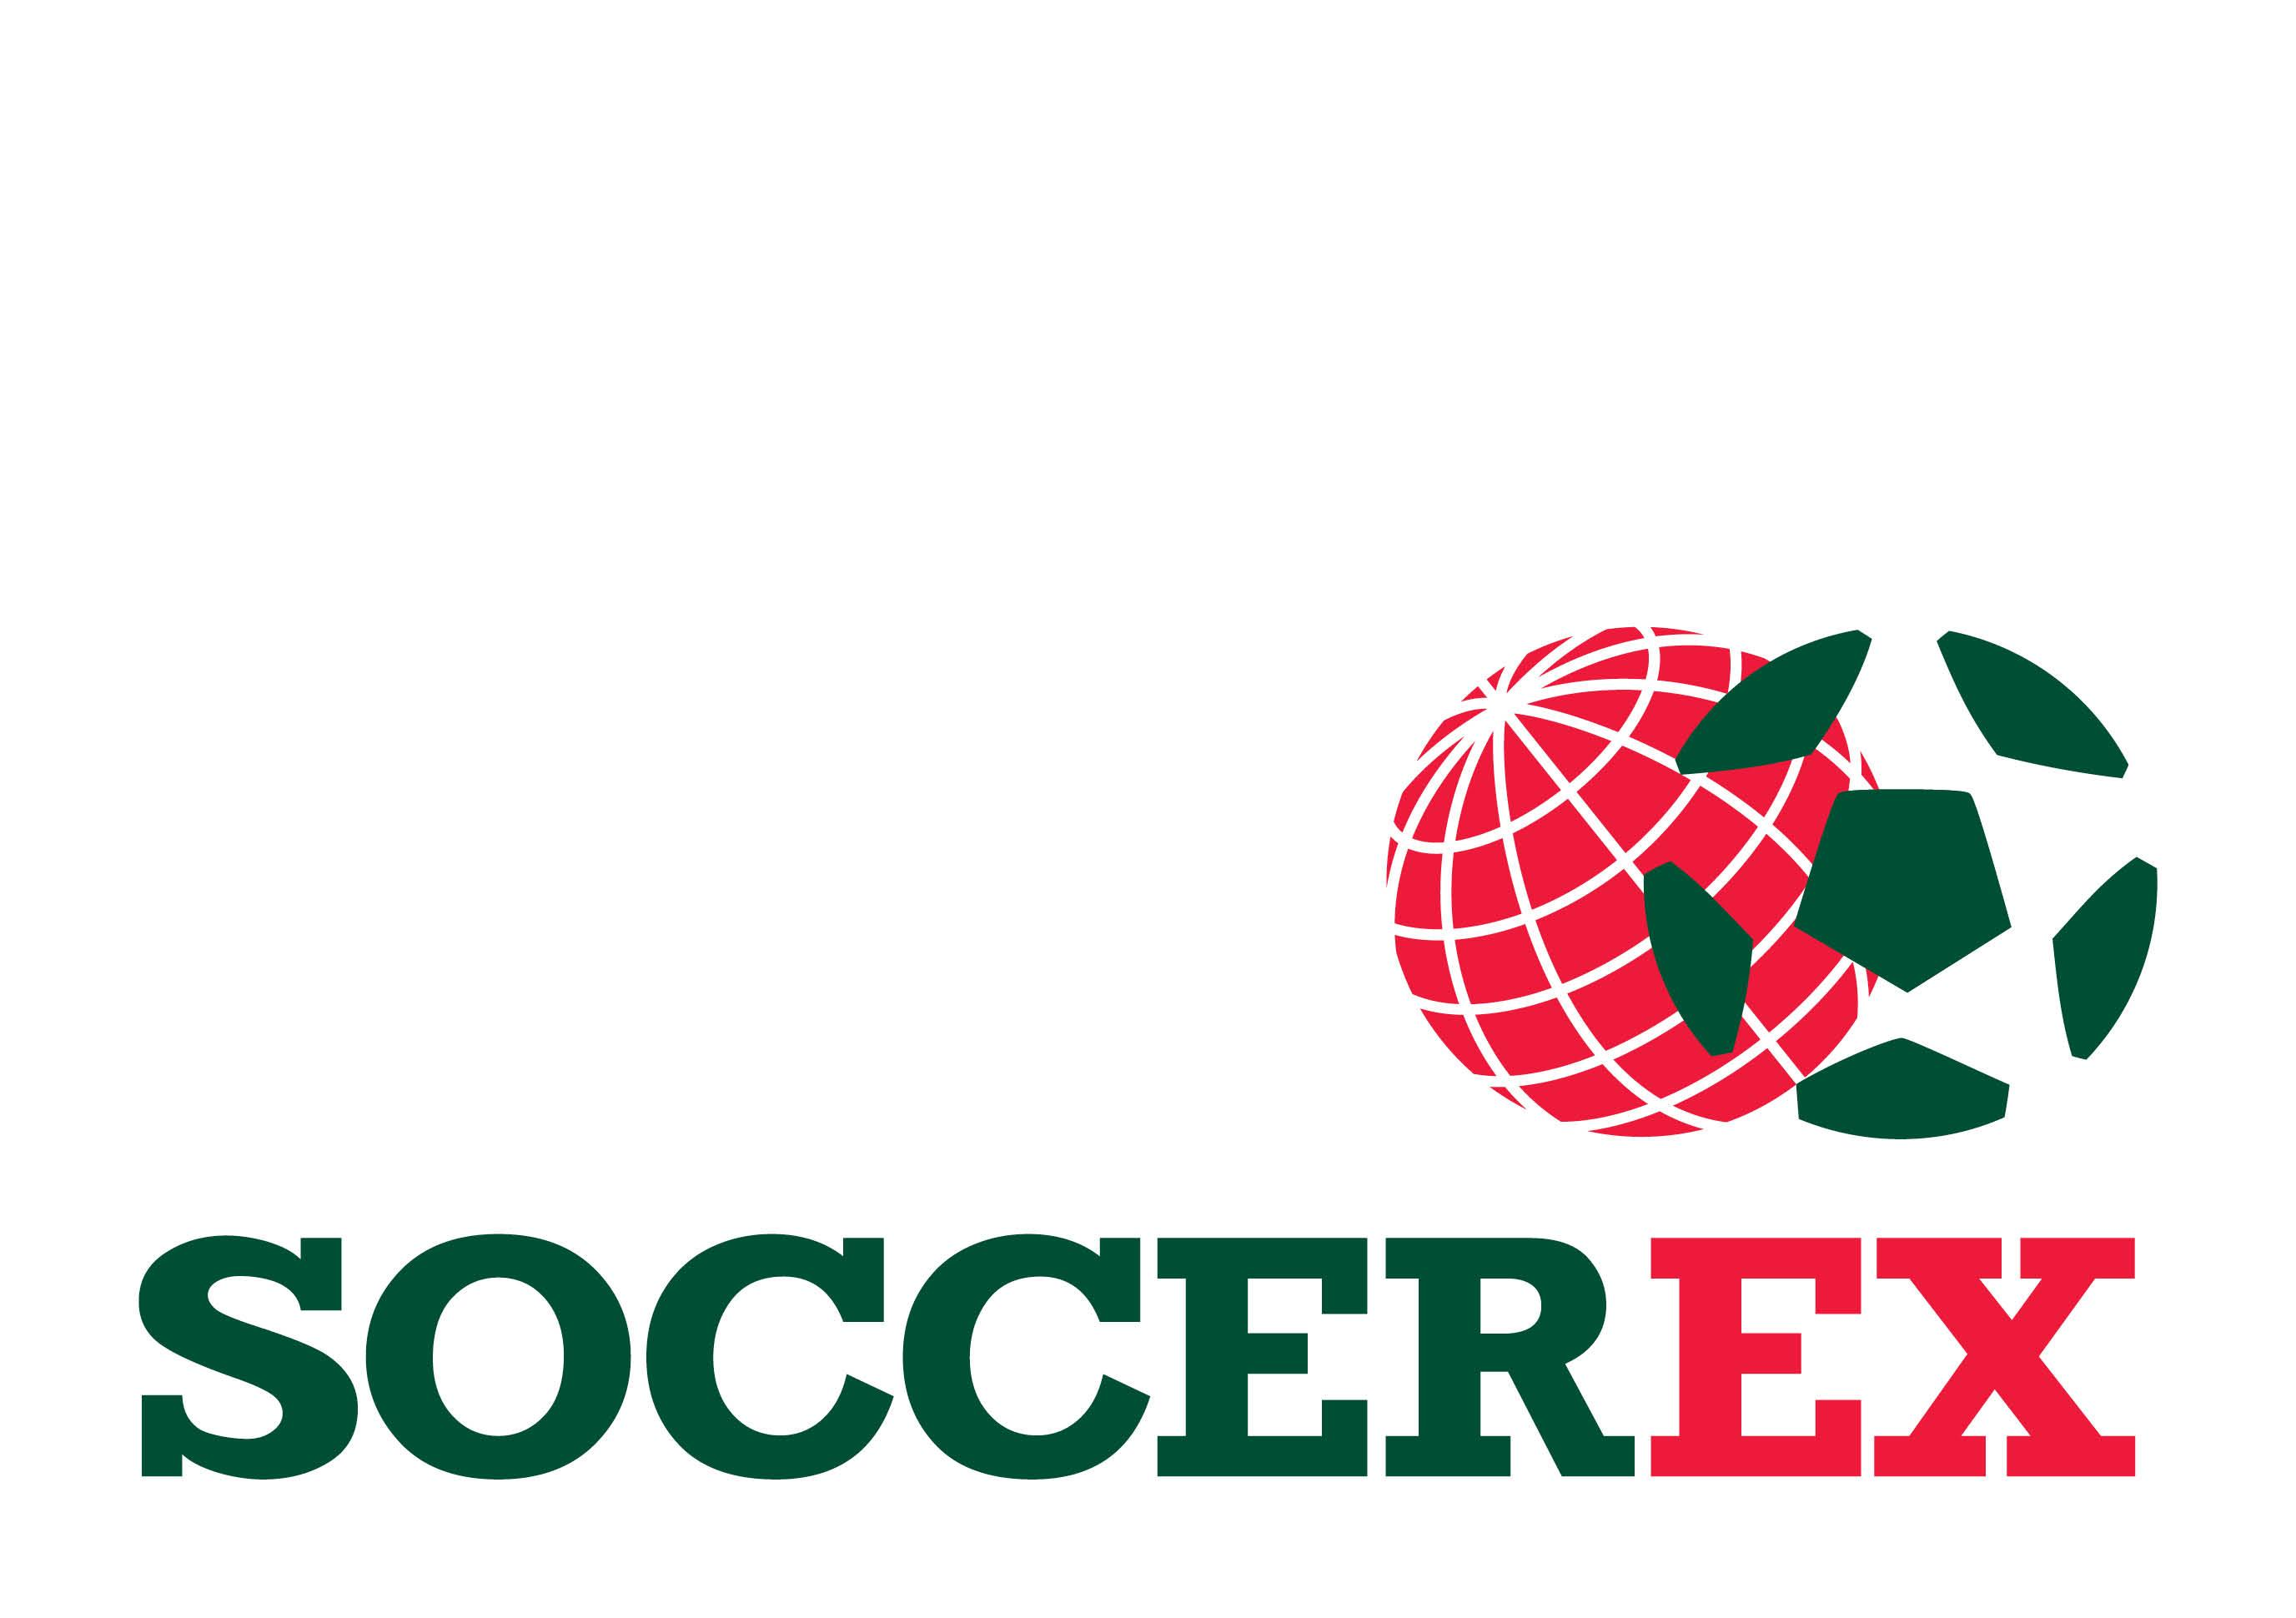 Soccerex has hit out at the Rio de Janeiro State Government after claims that the convention was cancelled due to a lack of funding